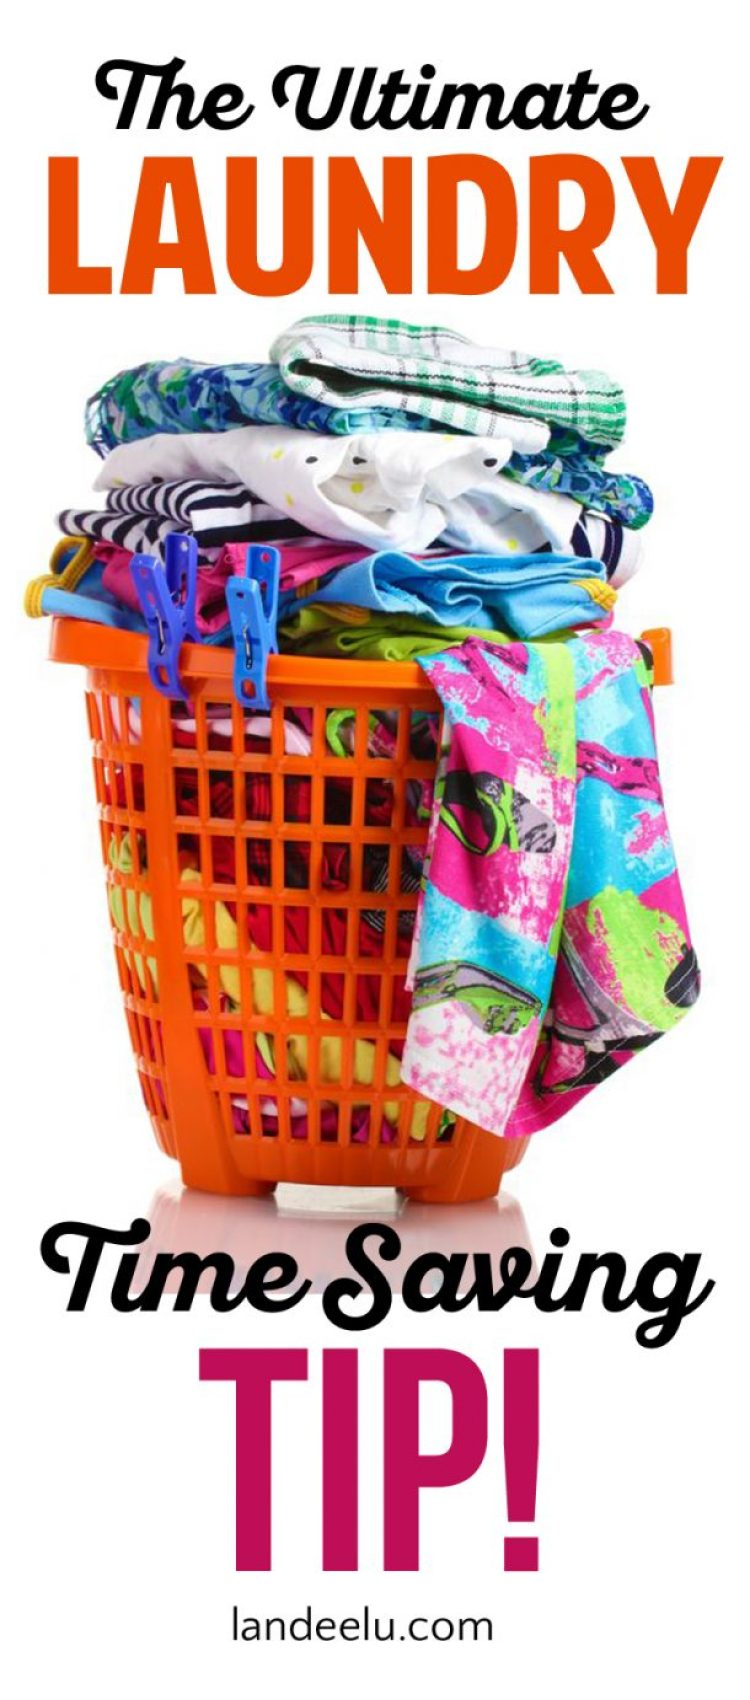 Save LOADS of time doing laundry with this one simple tip!